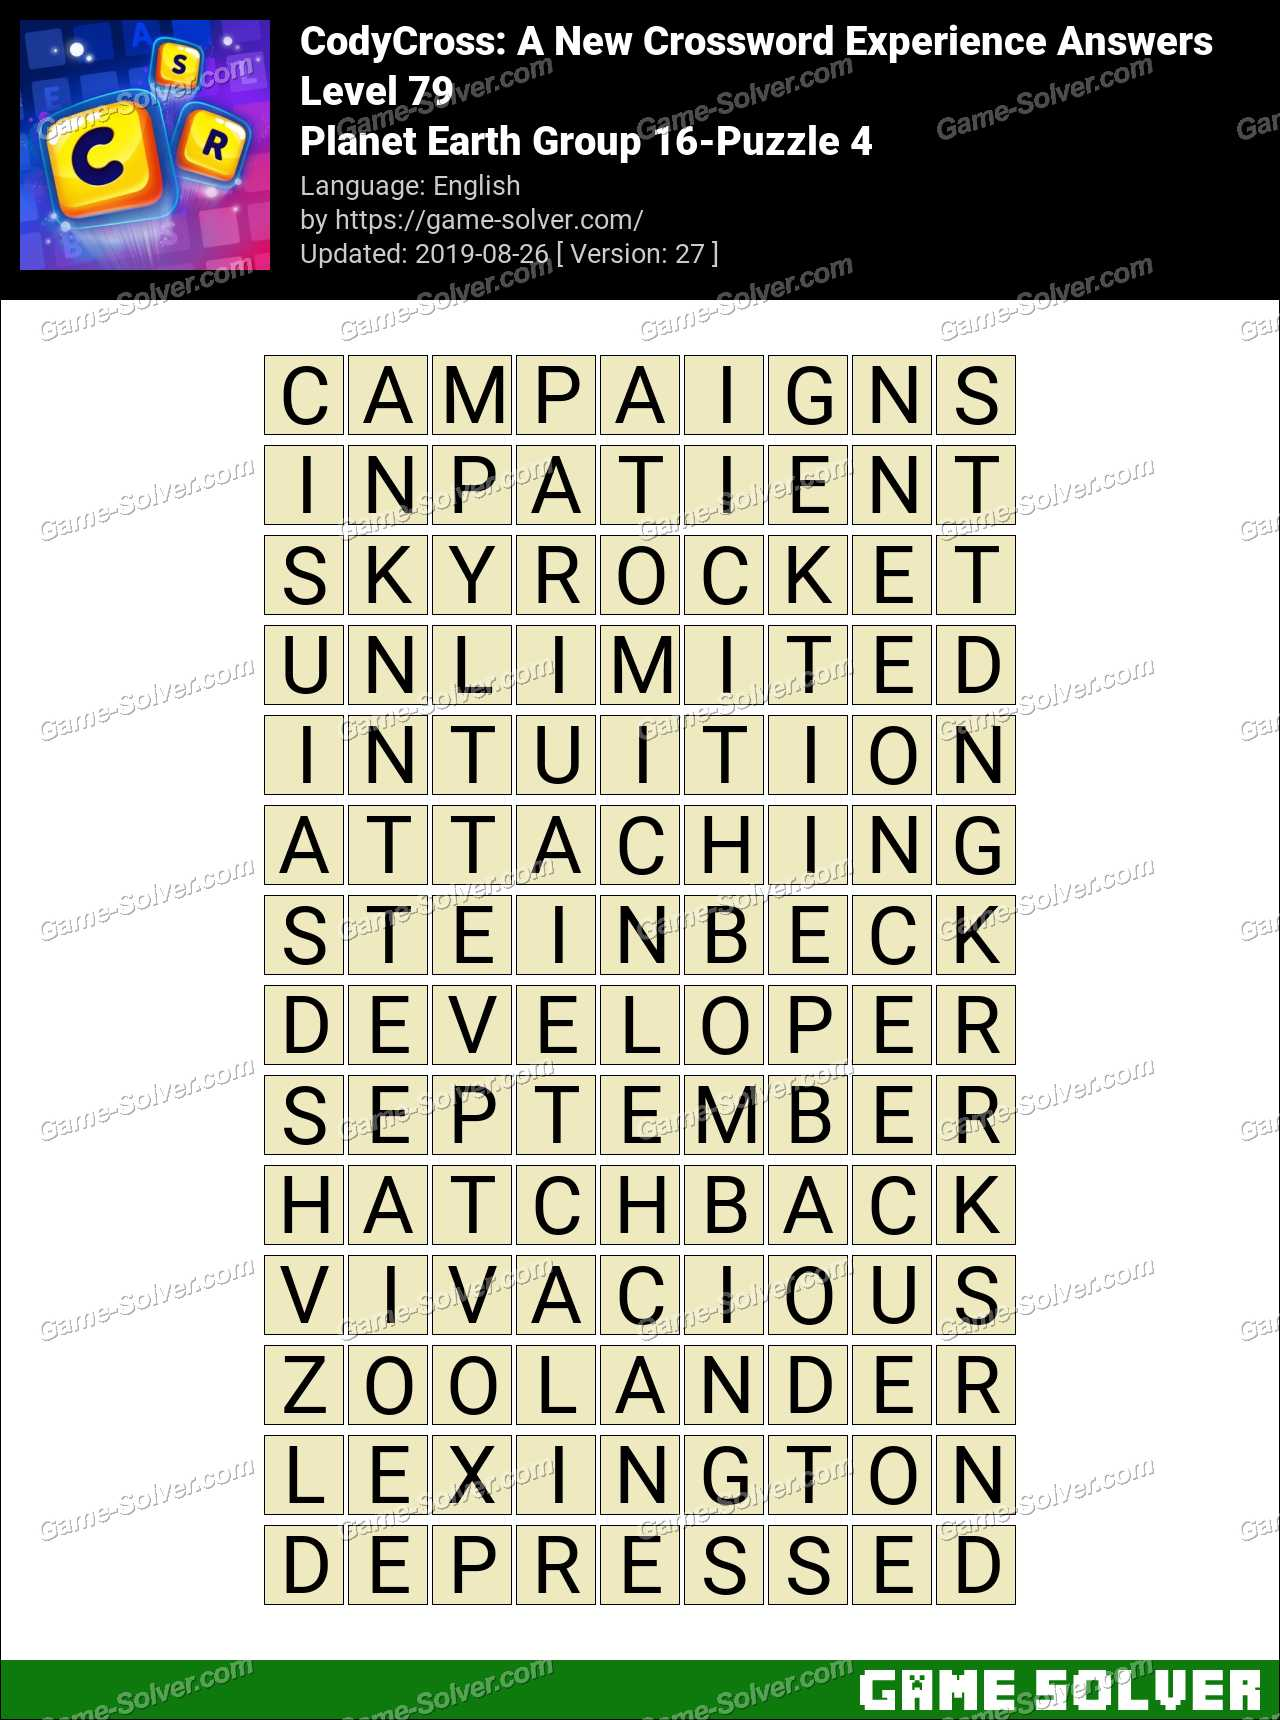 CodyCross Planet Earth Group 16-Puzzle 4 Answers - Game Solver